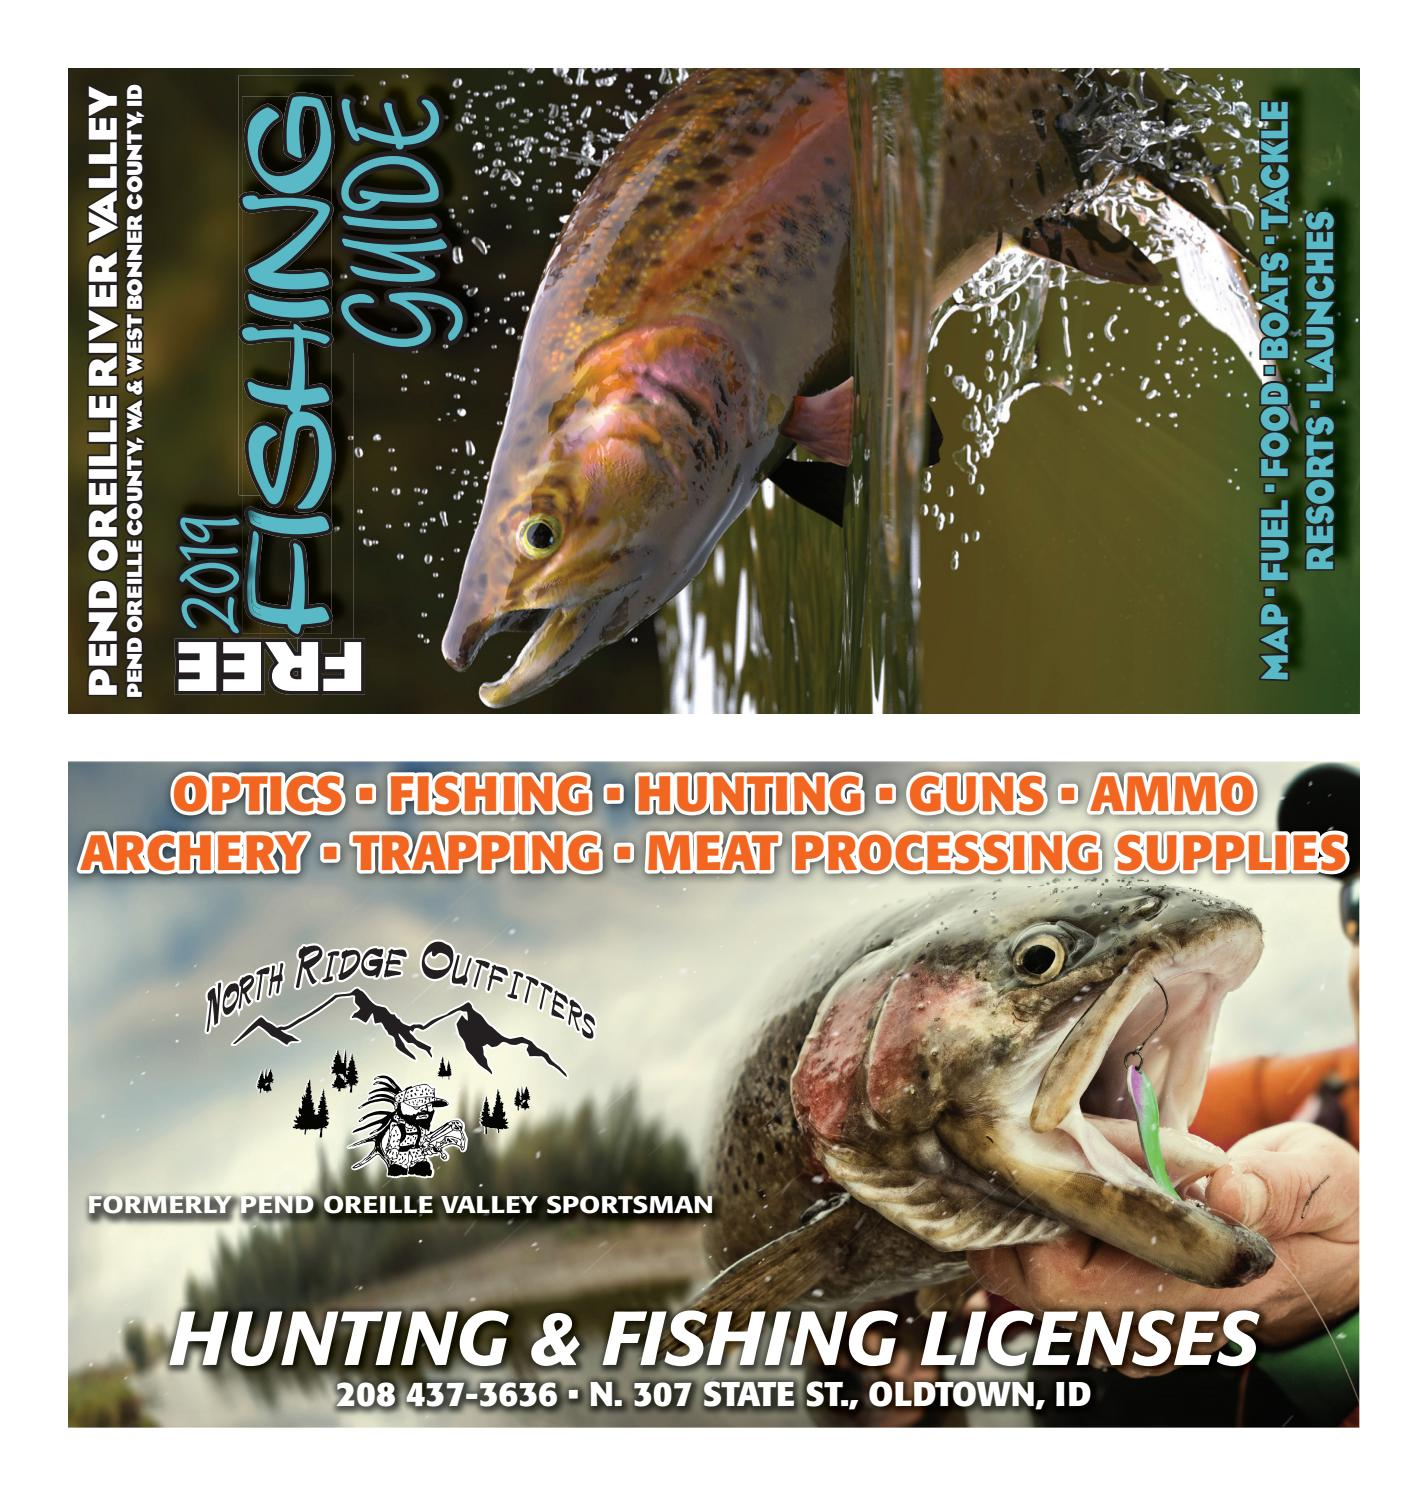 Fishing Guide 2019 by The Newport Miner - issuu